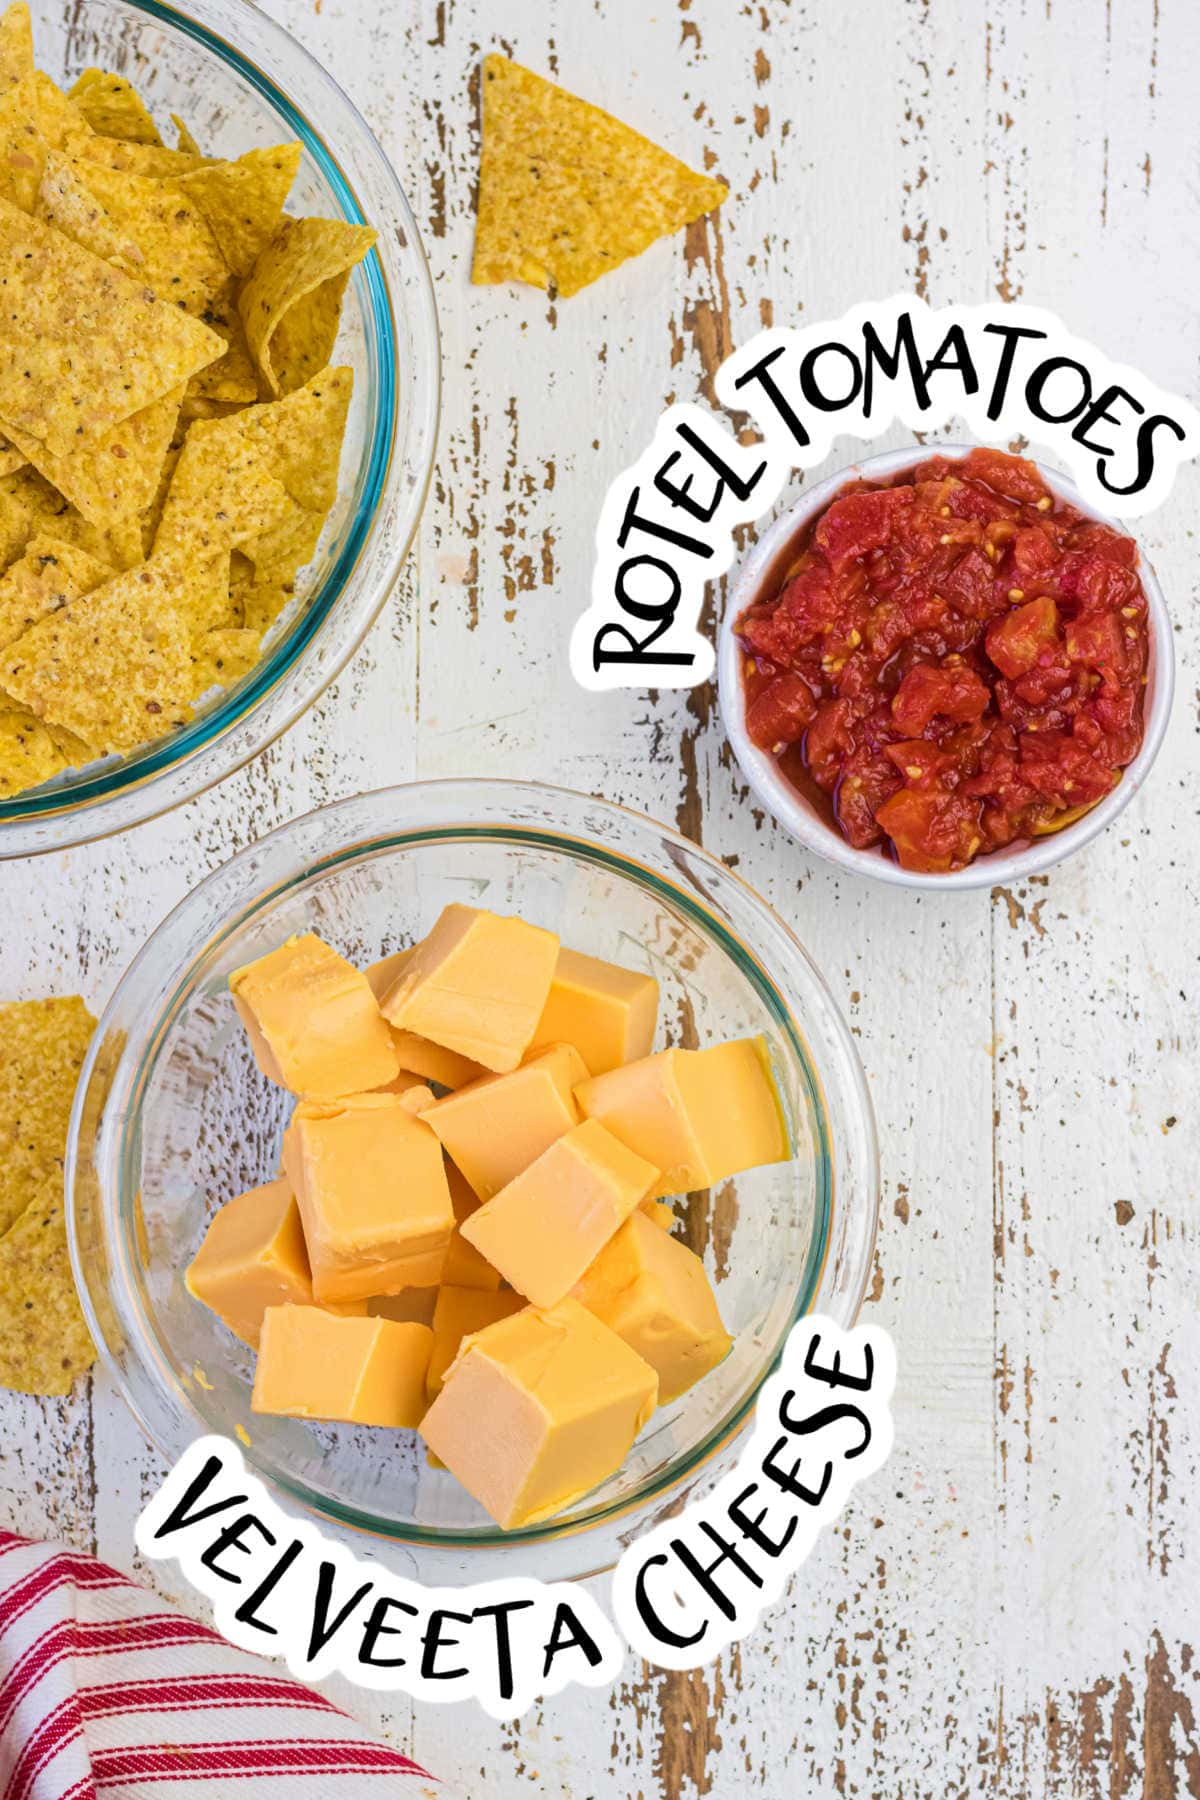 Ingredients for homemade queso dip.